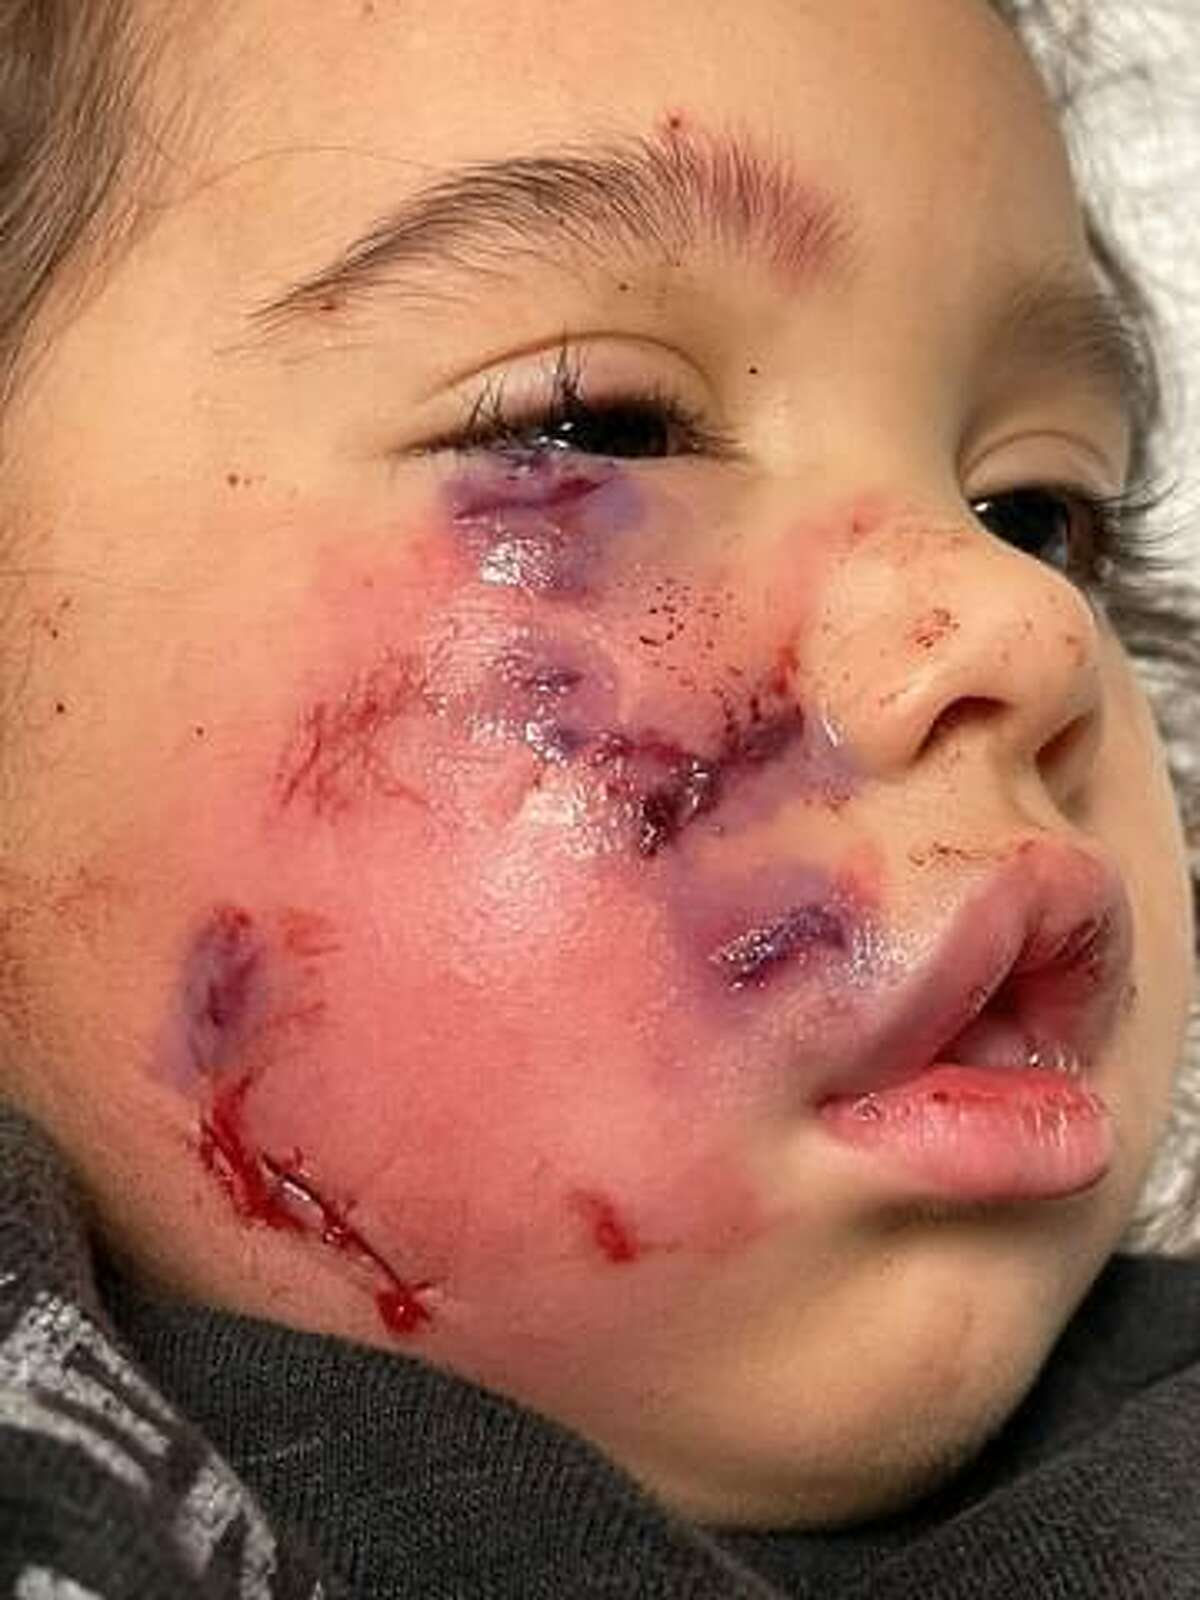 Three-year-old Ronin Waldroup, of Spring, after she was mauled by a leashed dog wearing a service vest inside the Loose Caboose restaurant in Spring on Jan. 9. The dog's owner is awaiting a Montgomery County justice of the peace's ruling about whether it will be euthanized.